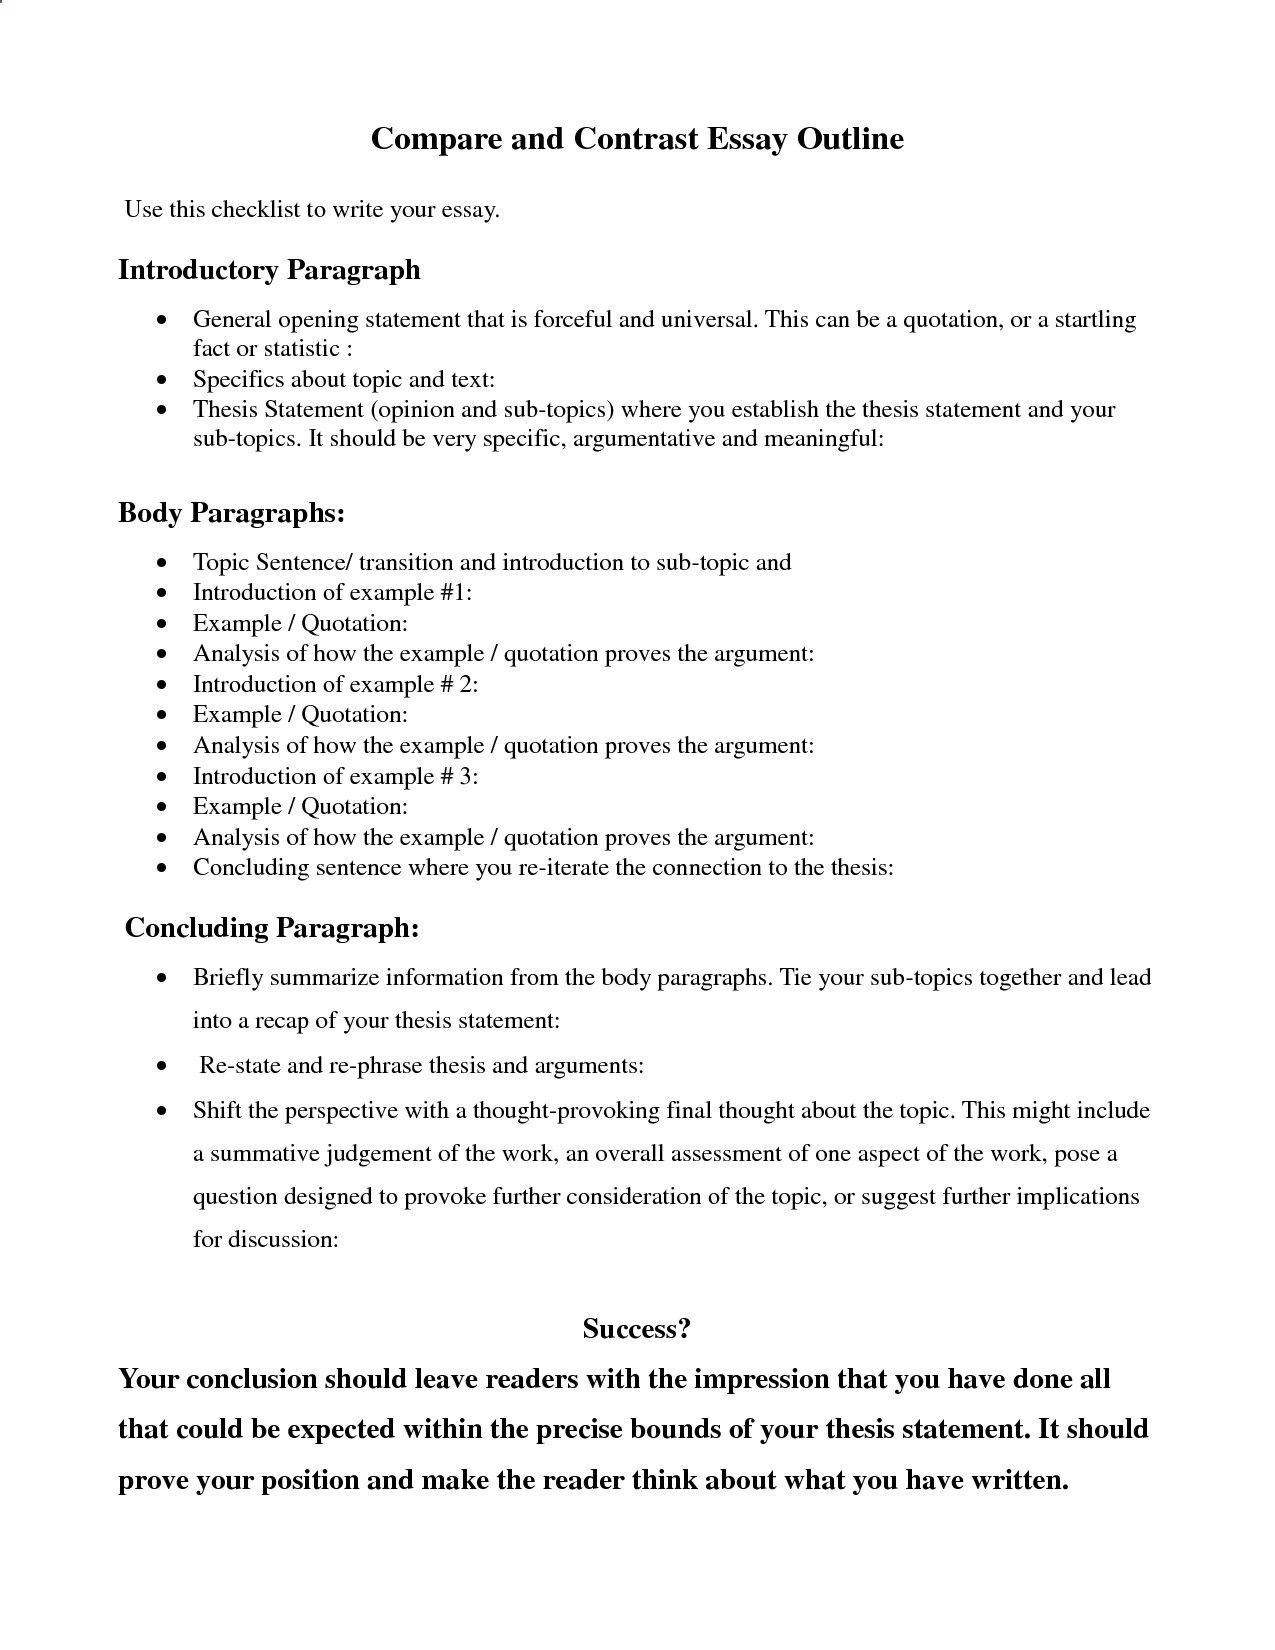 Compare Contrast Essay Outline Google Search Thesi Statement Questions Good Topic For A Comparison And Should